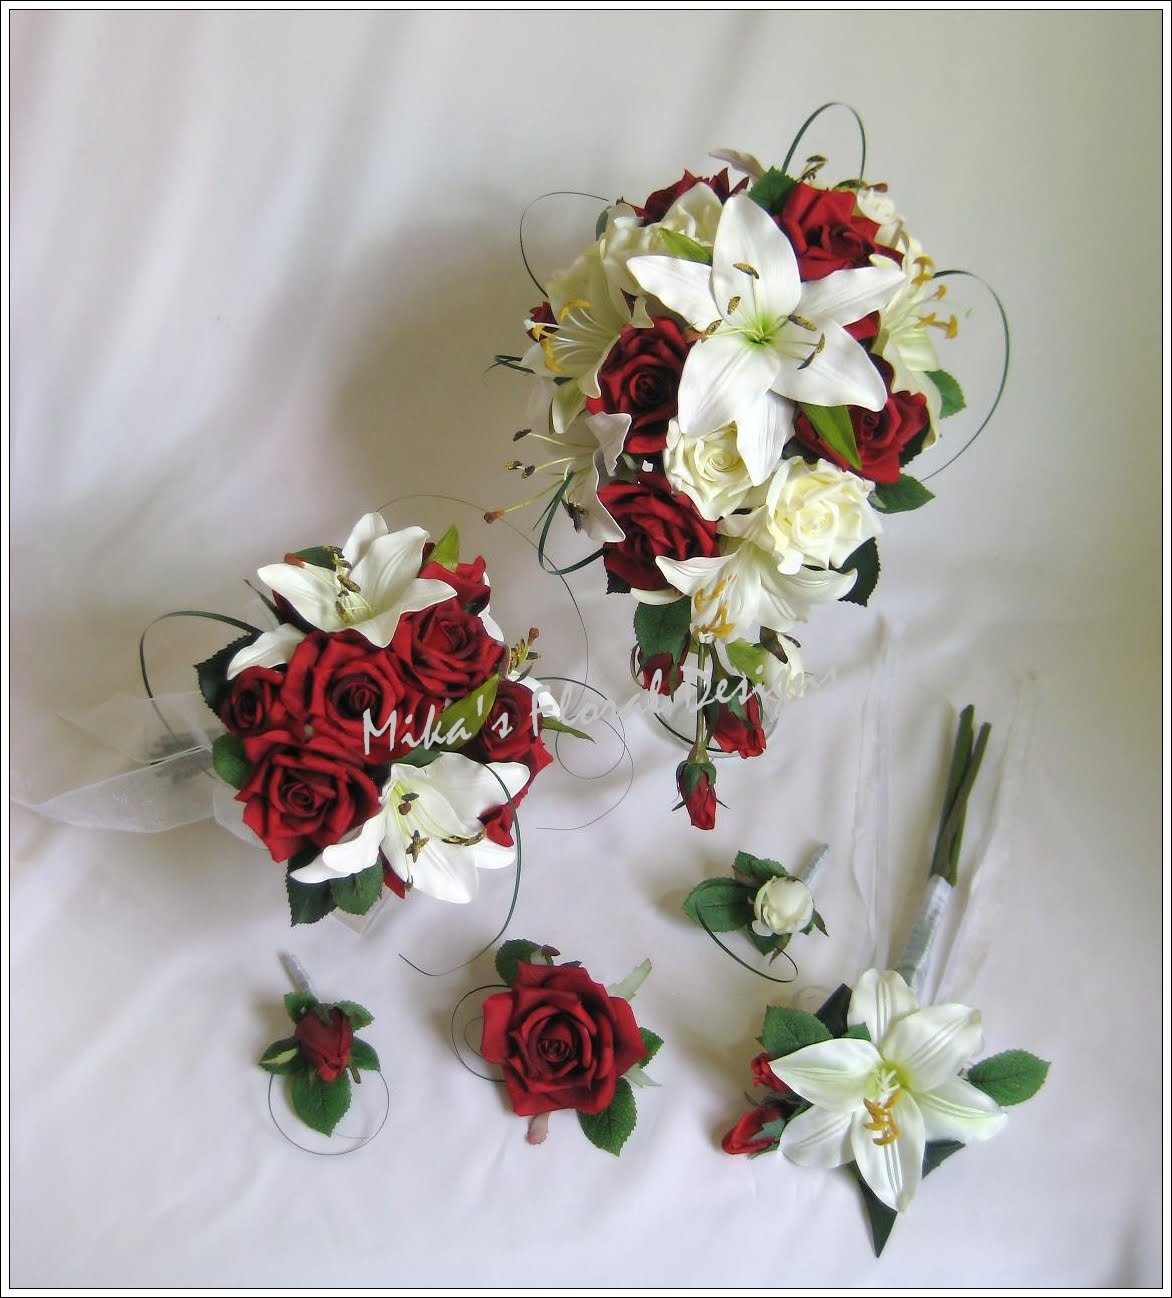 Wedding Flower Arrangements With Lilies : Artificial wedding flowers and bouquets australia flower arrangements of roses lilies